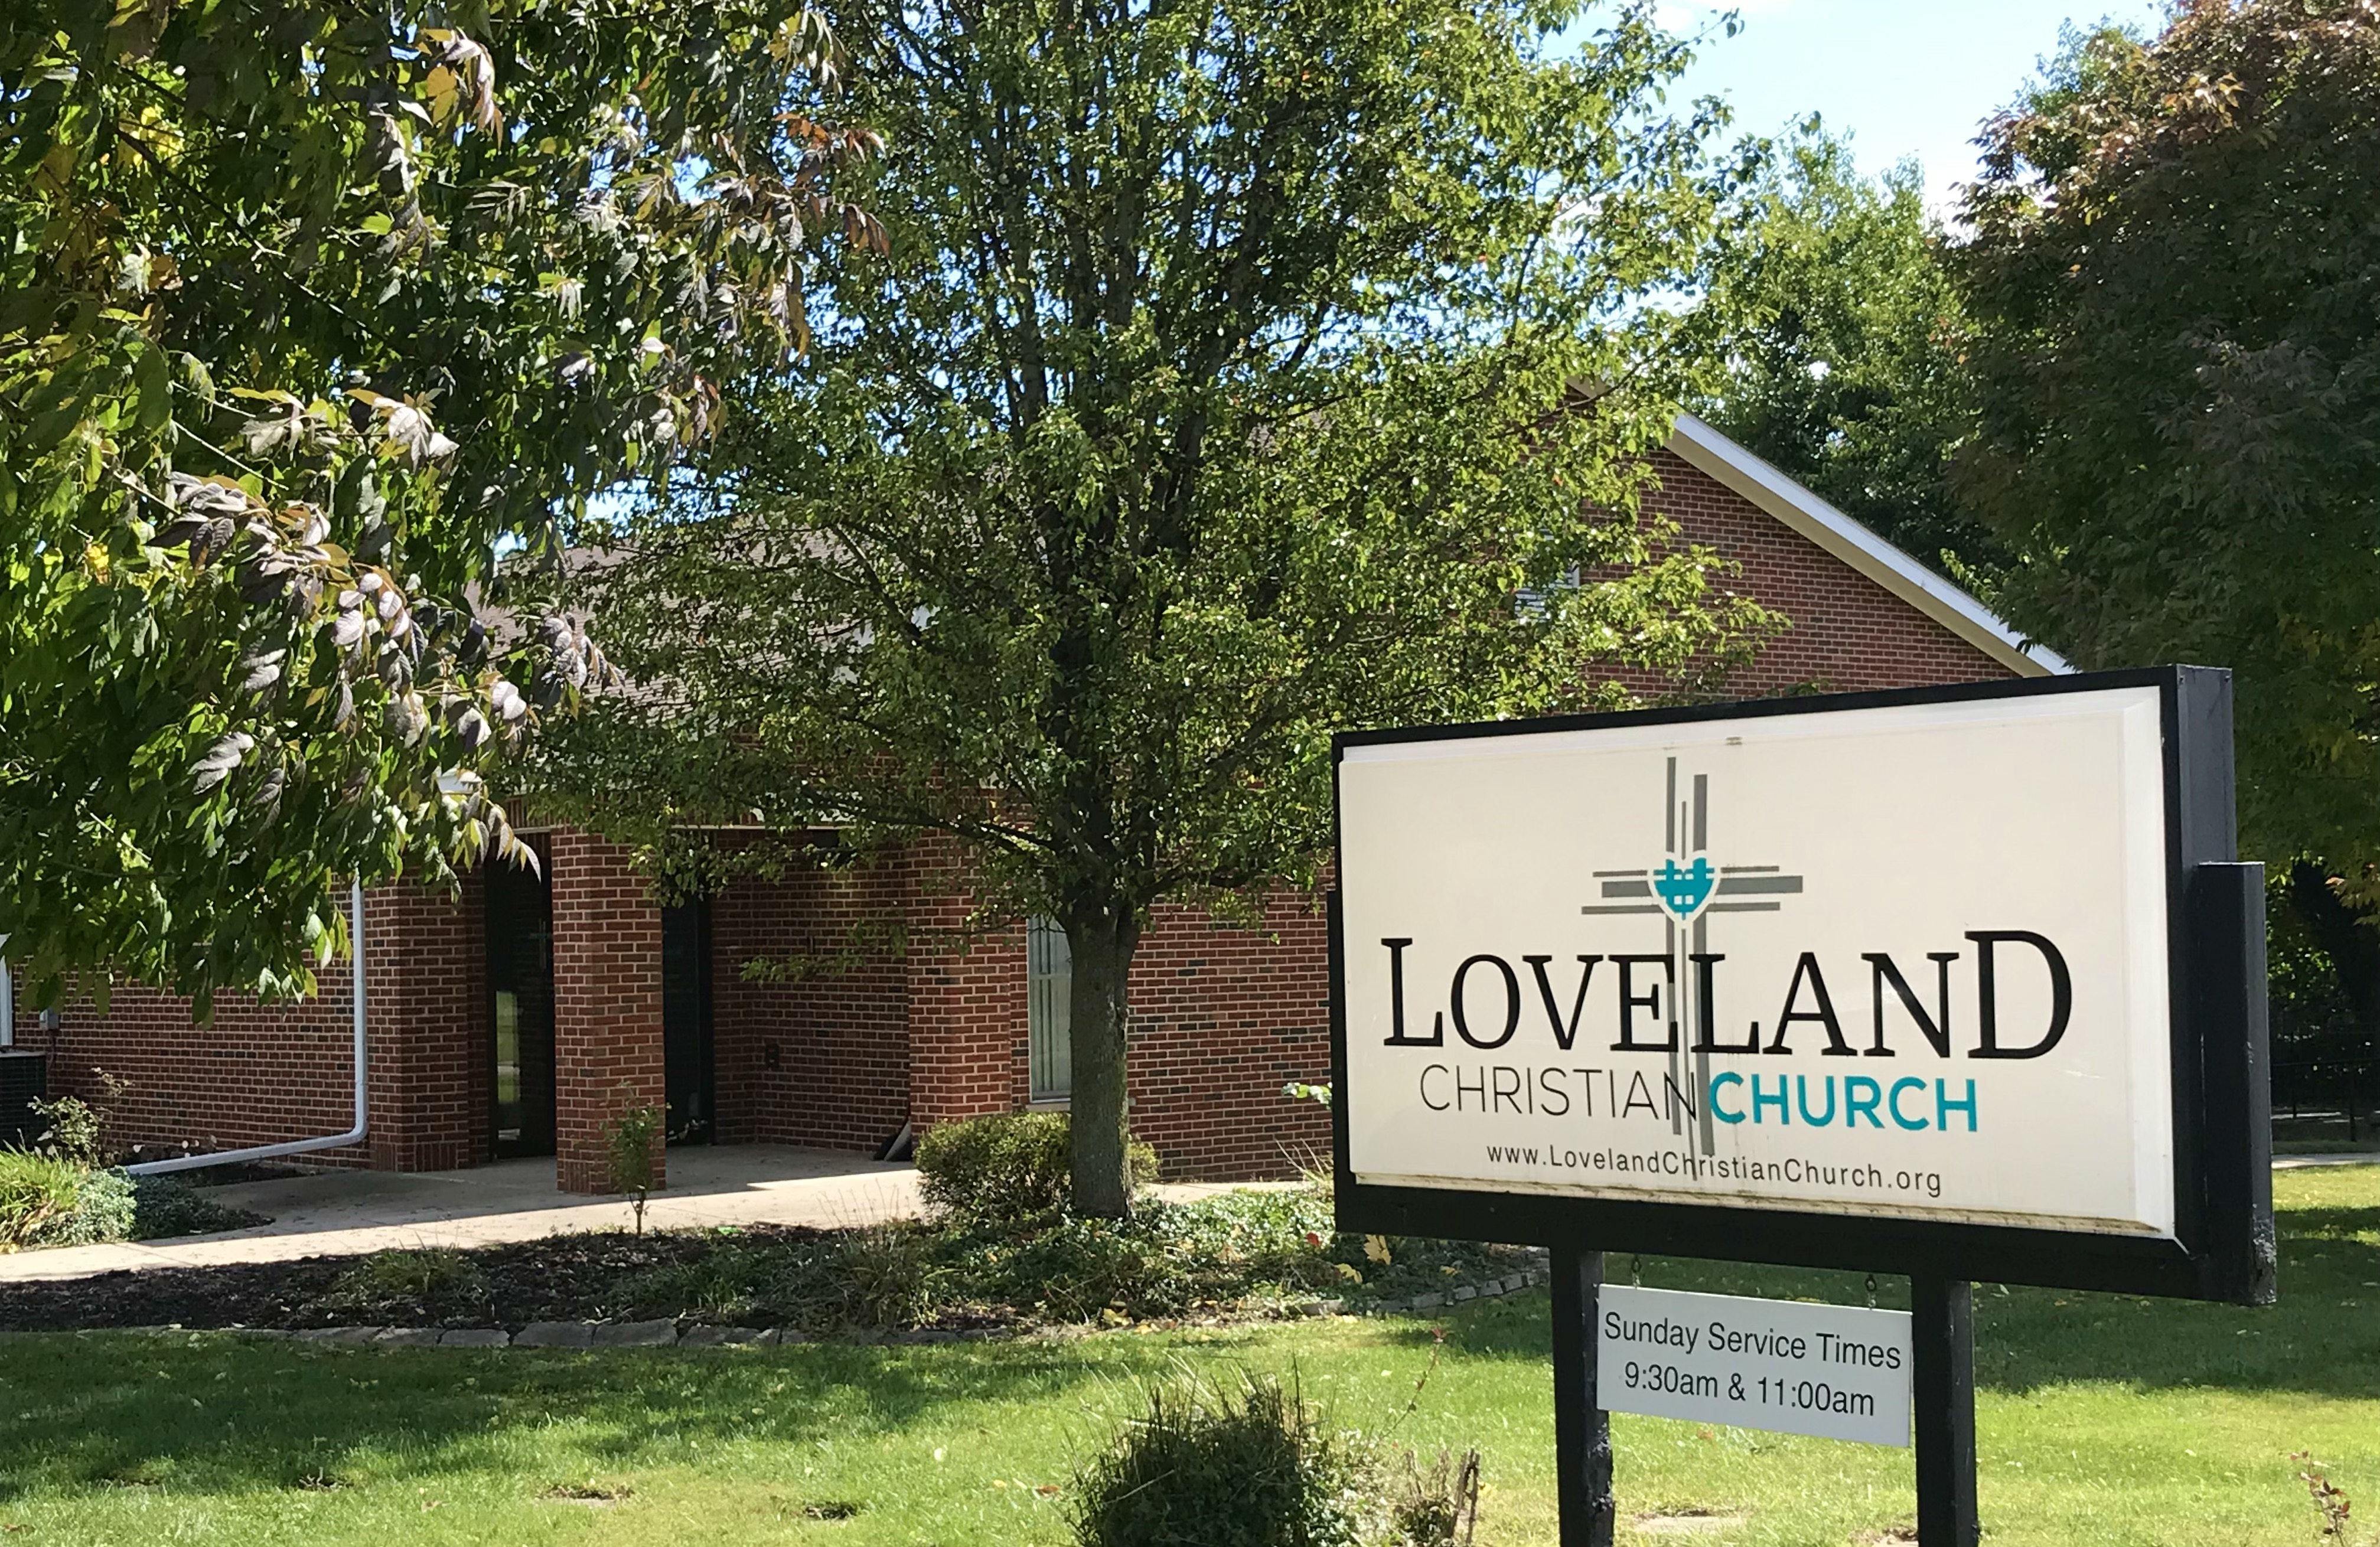 Loveland Christian Church building